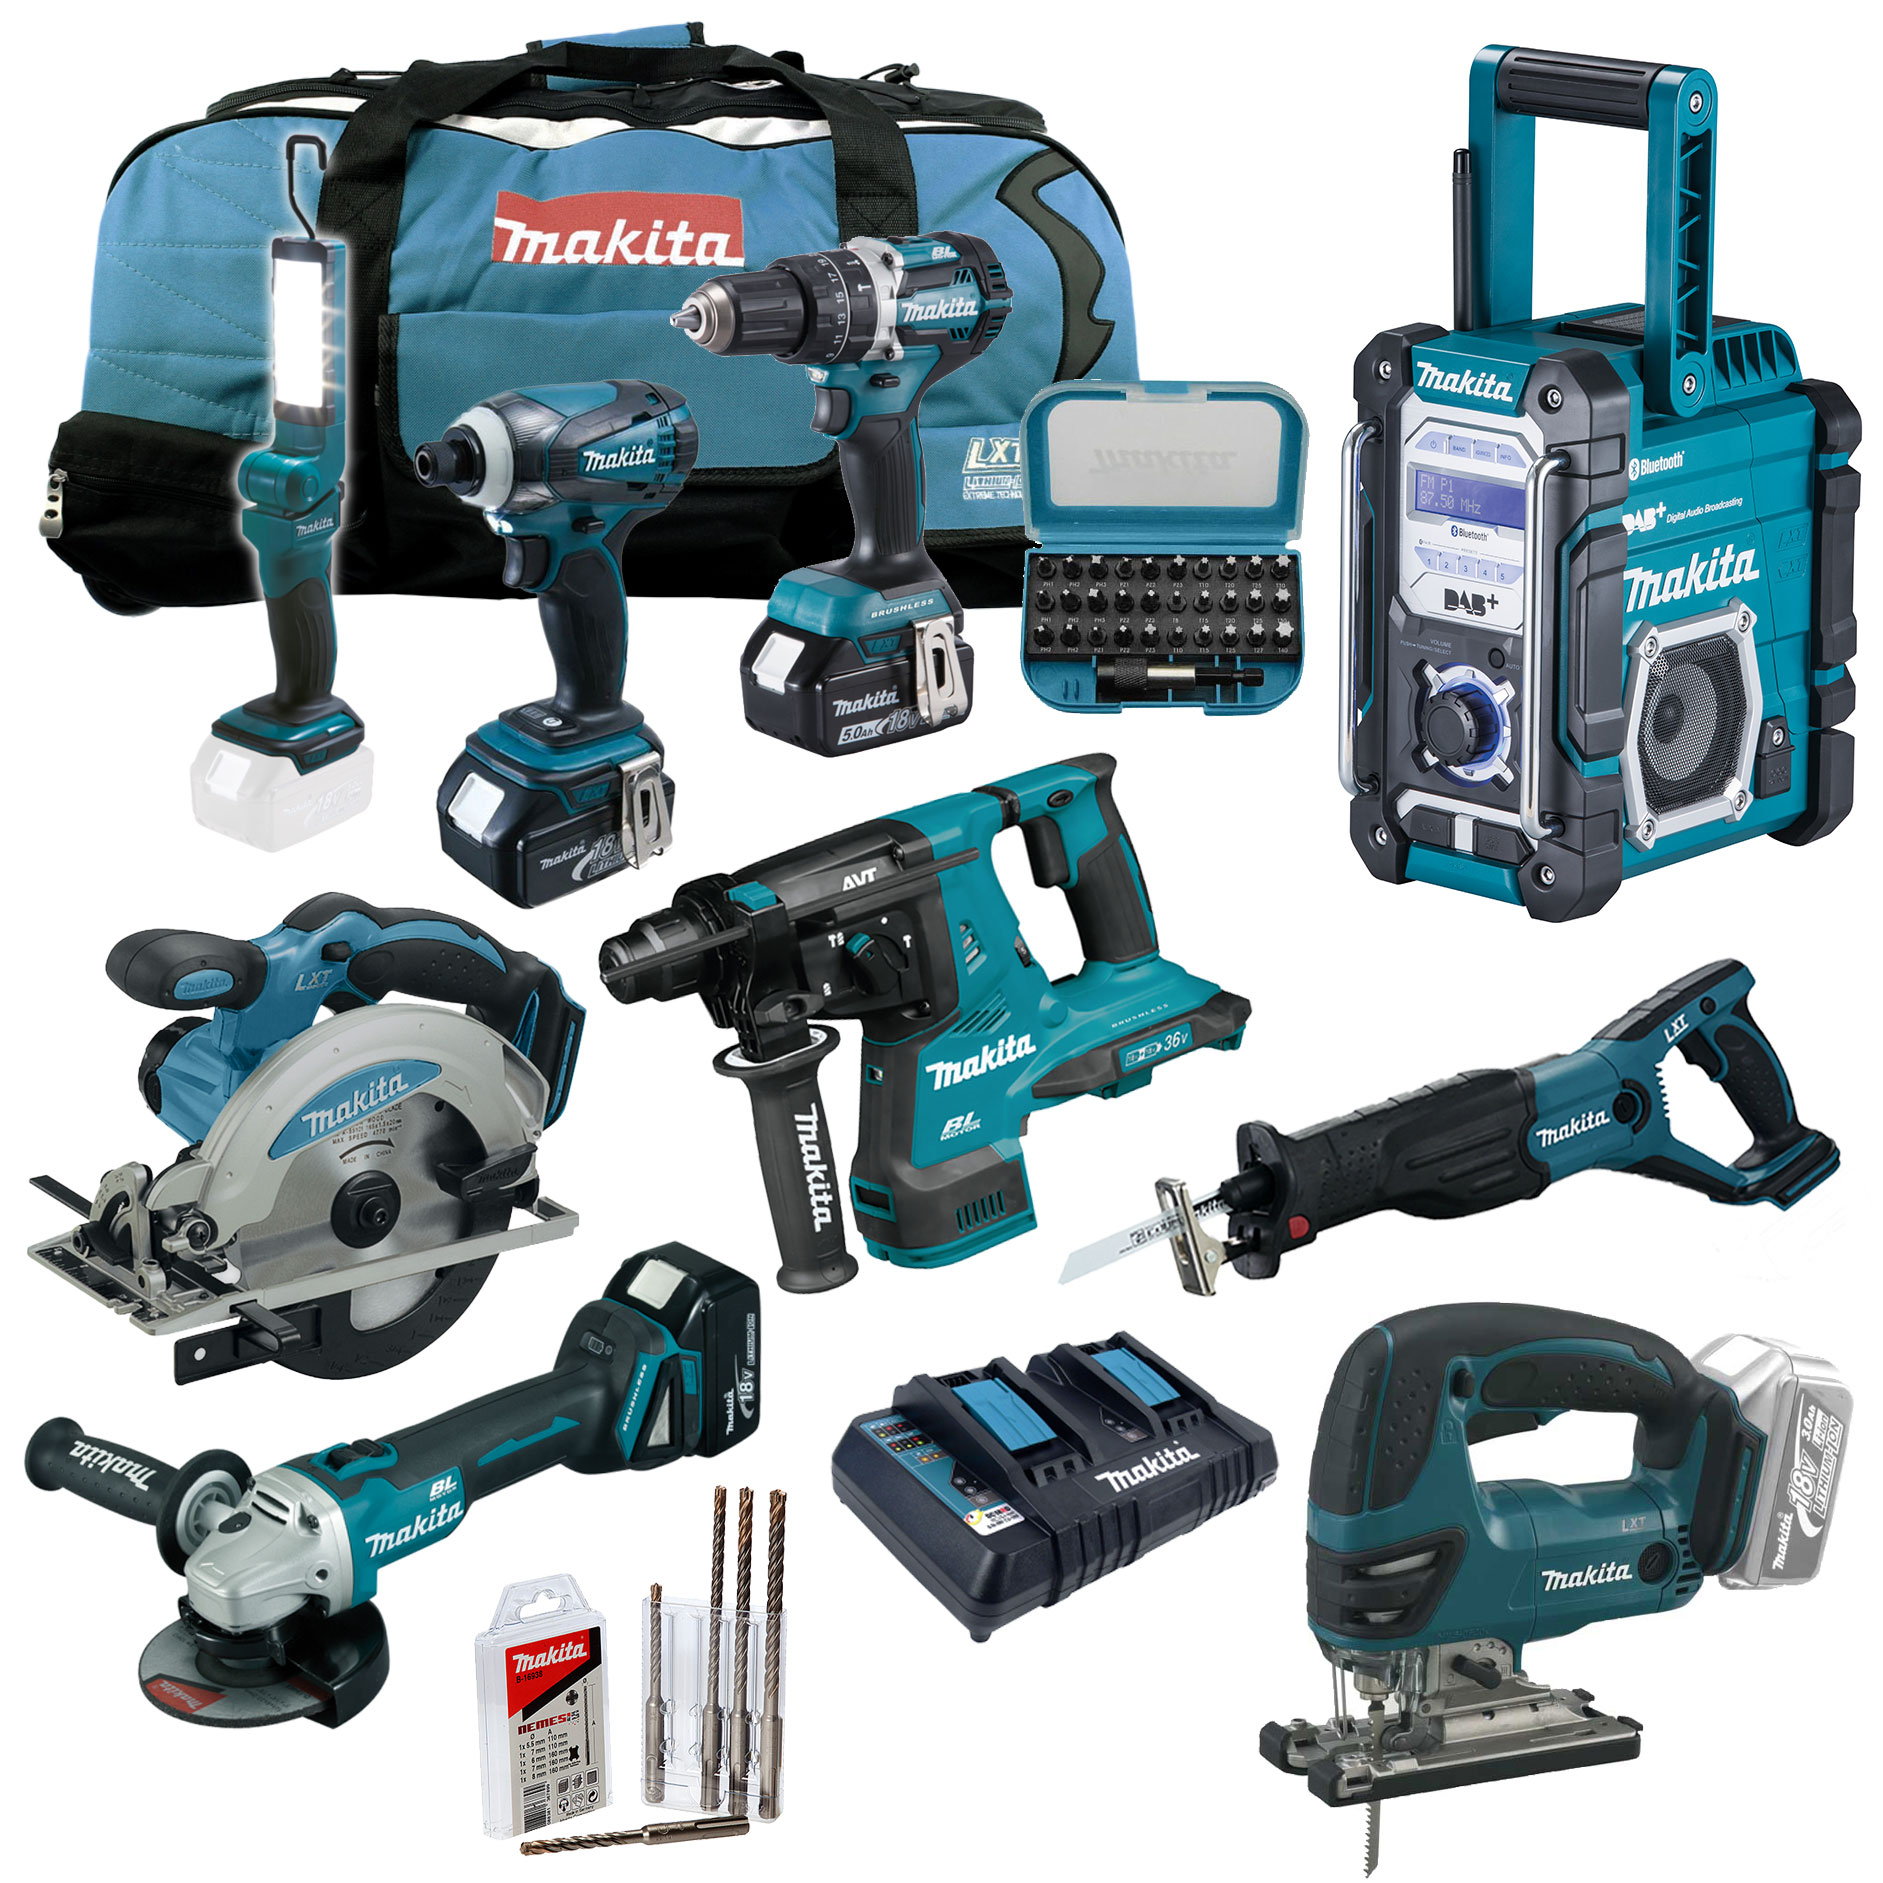 makita 18v akku werkzeug mega set dhr280 zj 36v bohrhammer. Black Bedroom Furniture Sets. Home Design Ideas